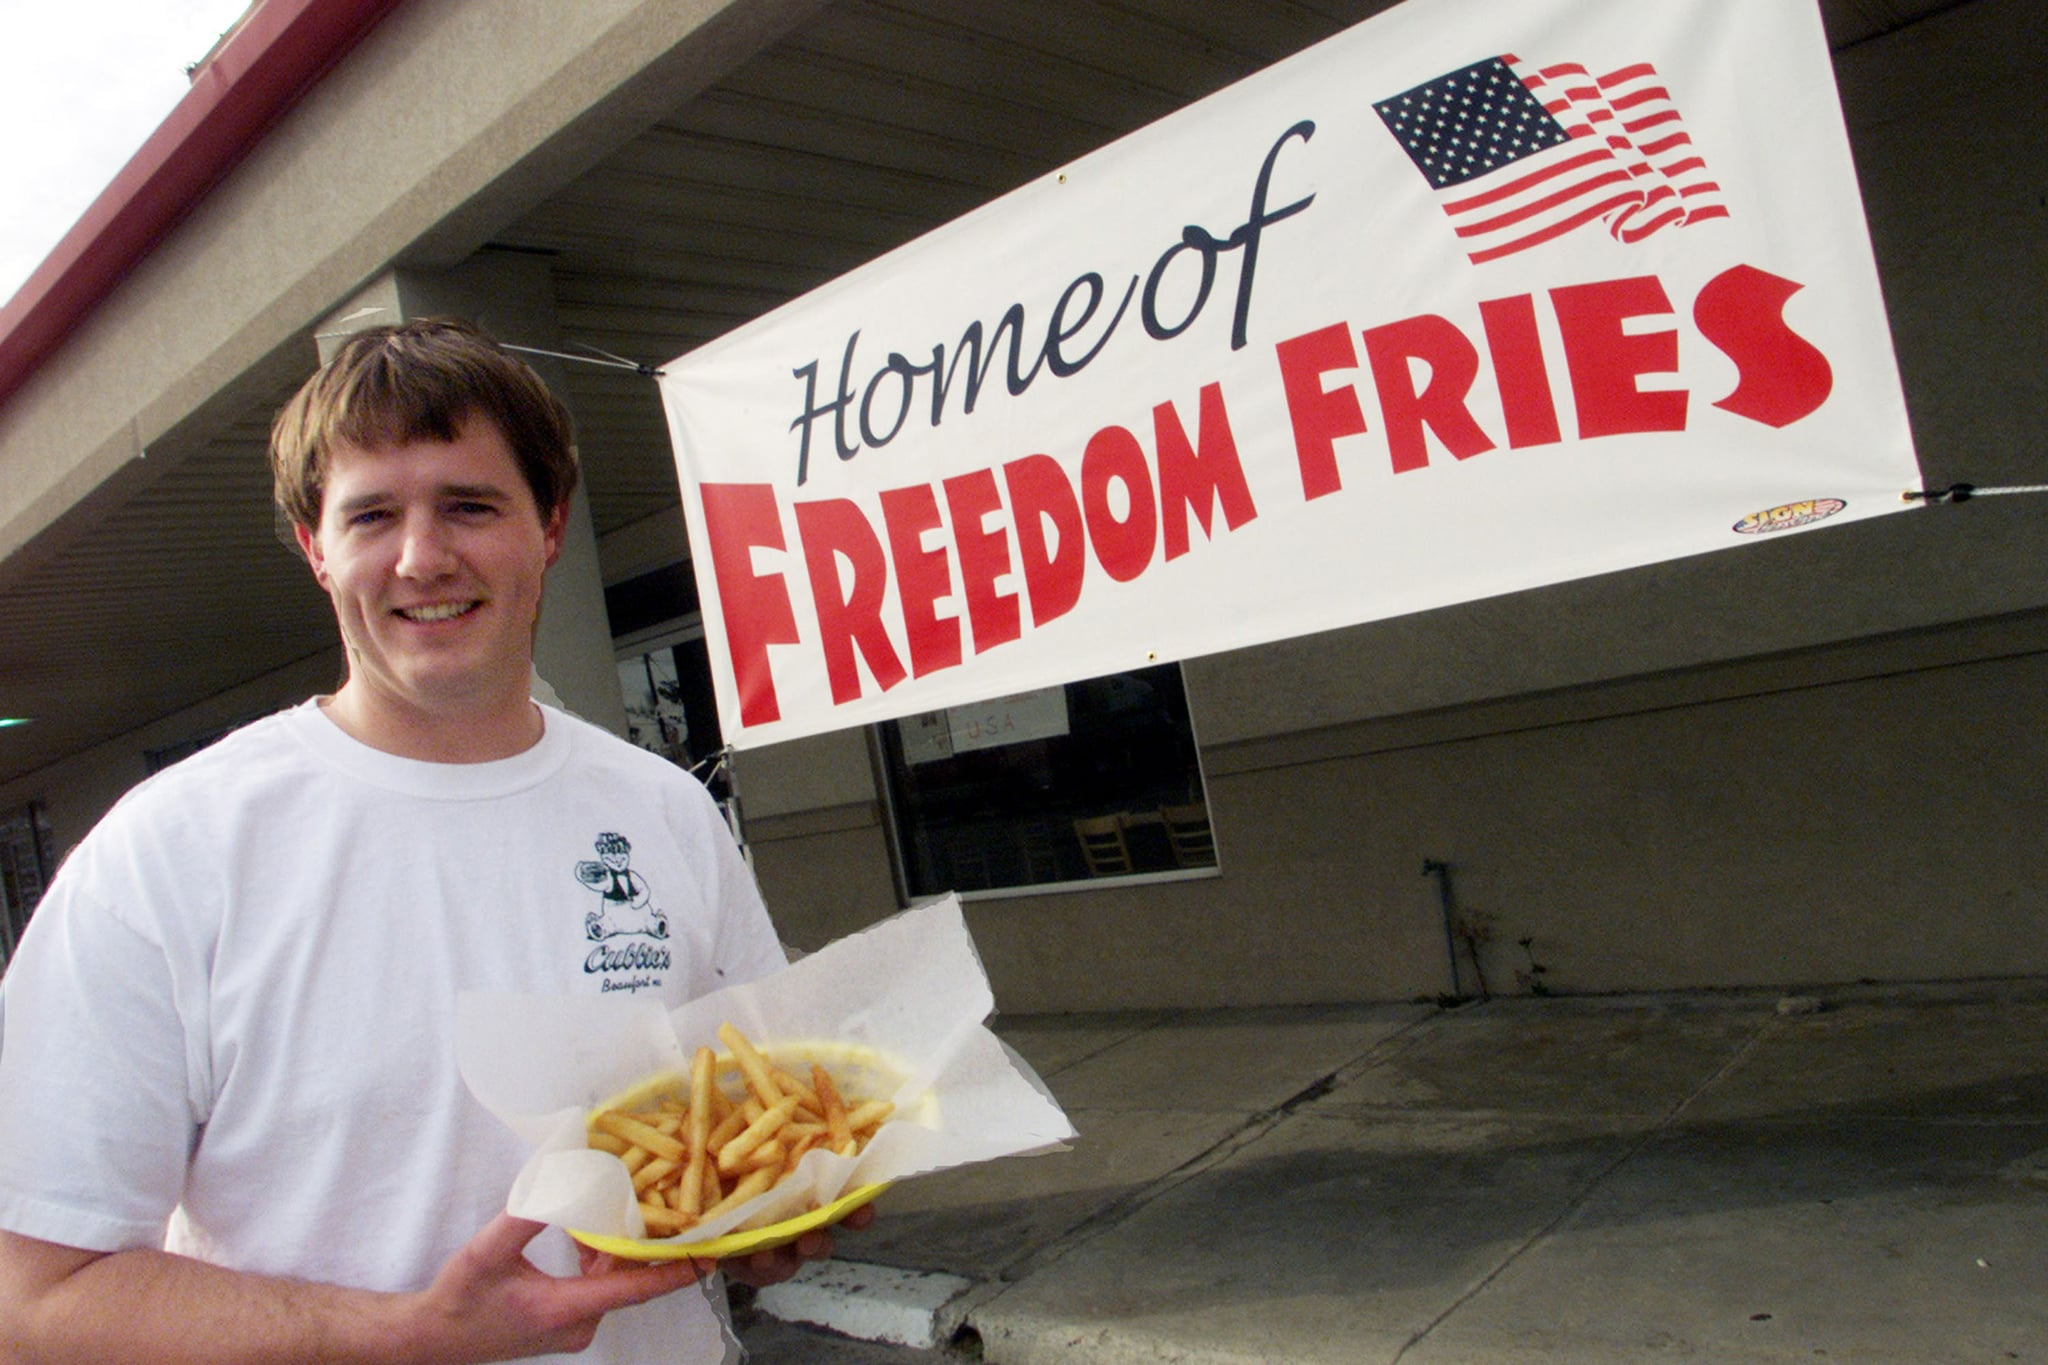 Restaurant owner changed name of French fries, to Freedom Fries to show his disgust with the French government's Iraq policy.